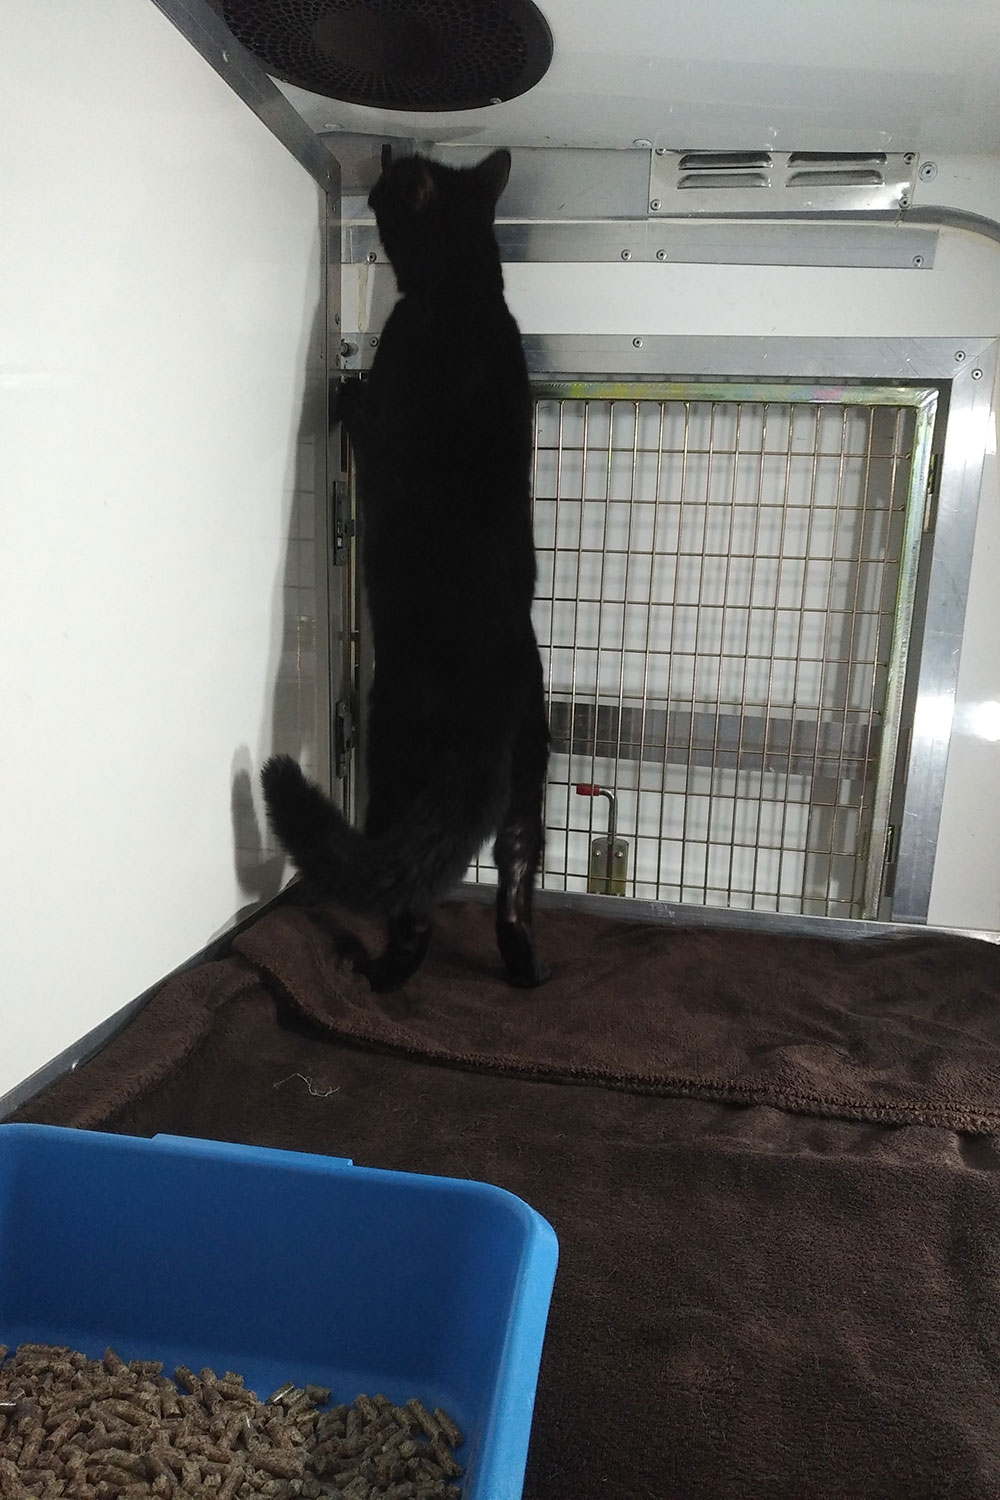 …while Spike attempts to arrange an escape party